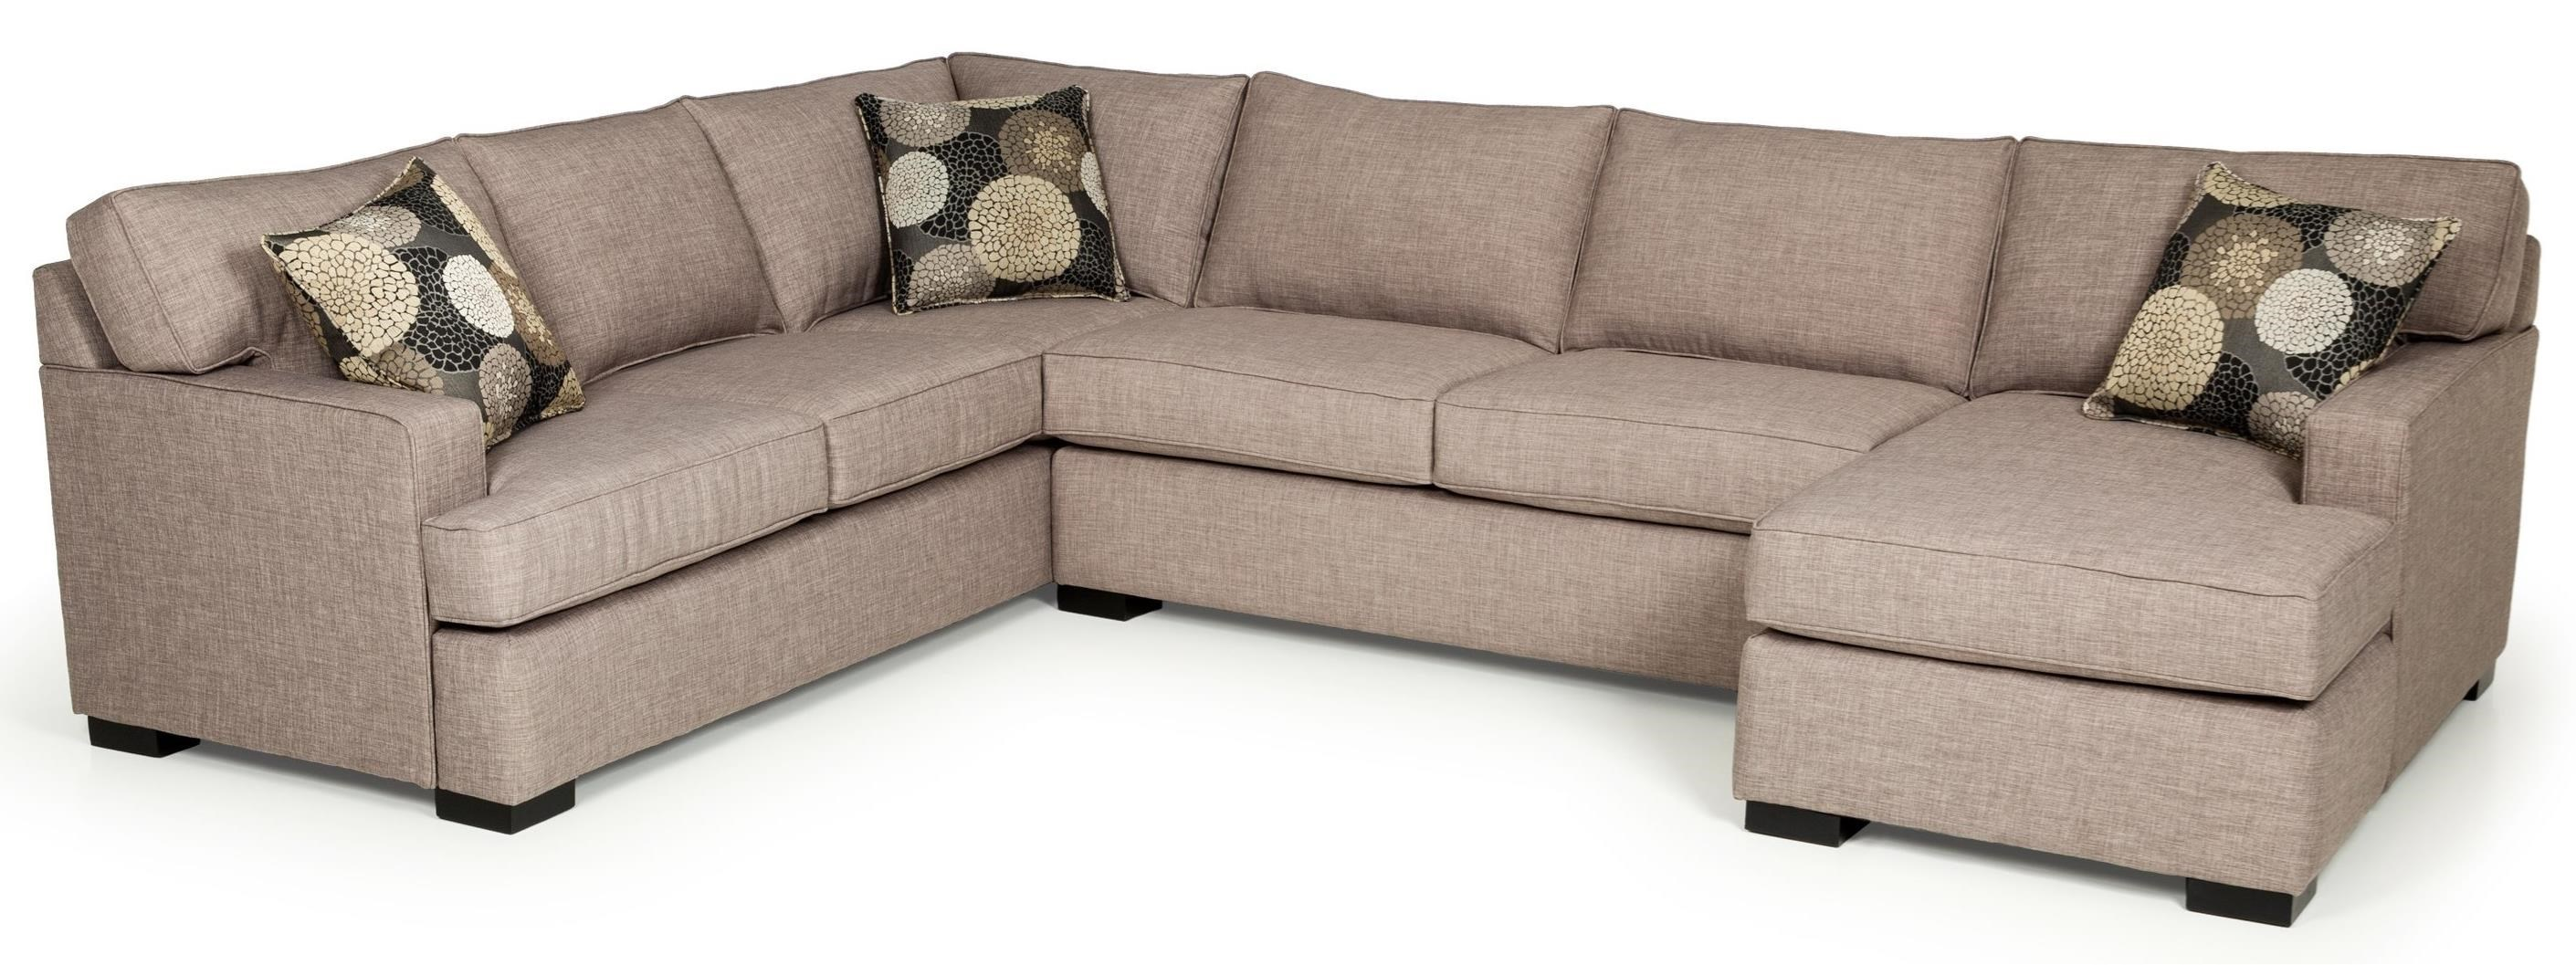 Stanton 146 Contemporary Three Piece Sectional Sofa With